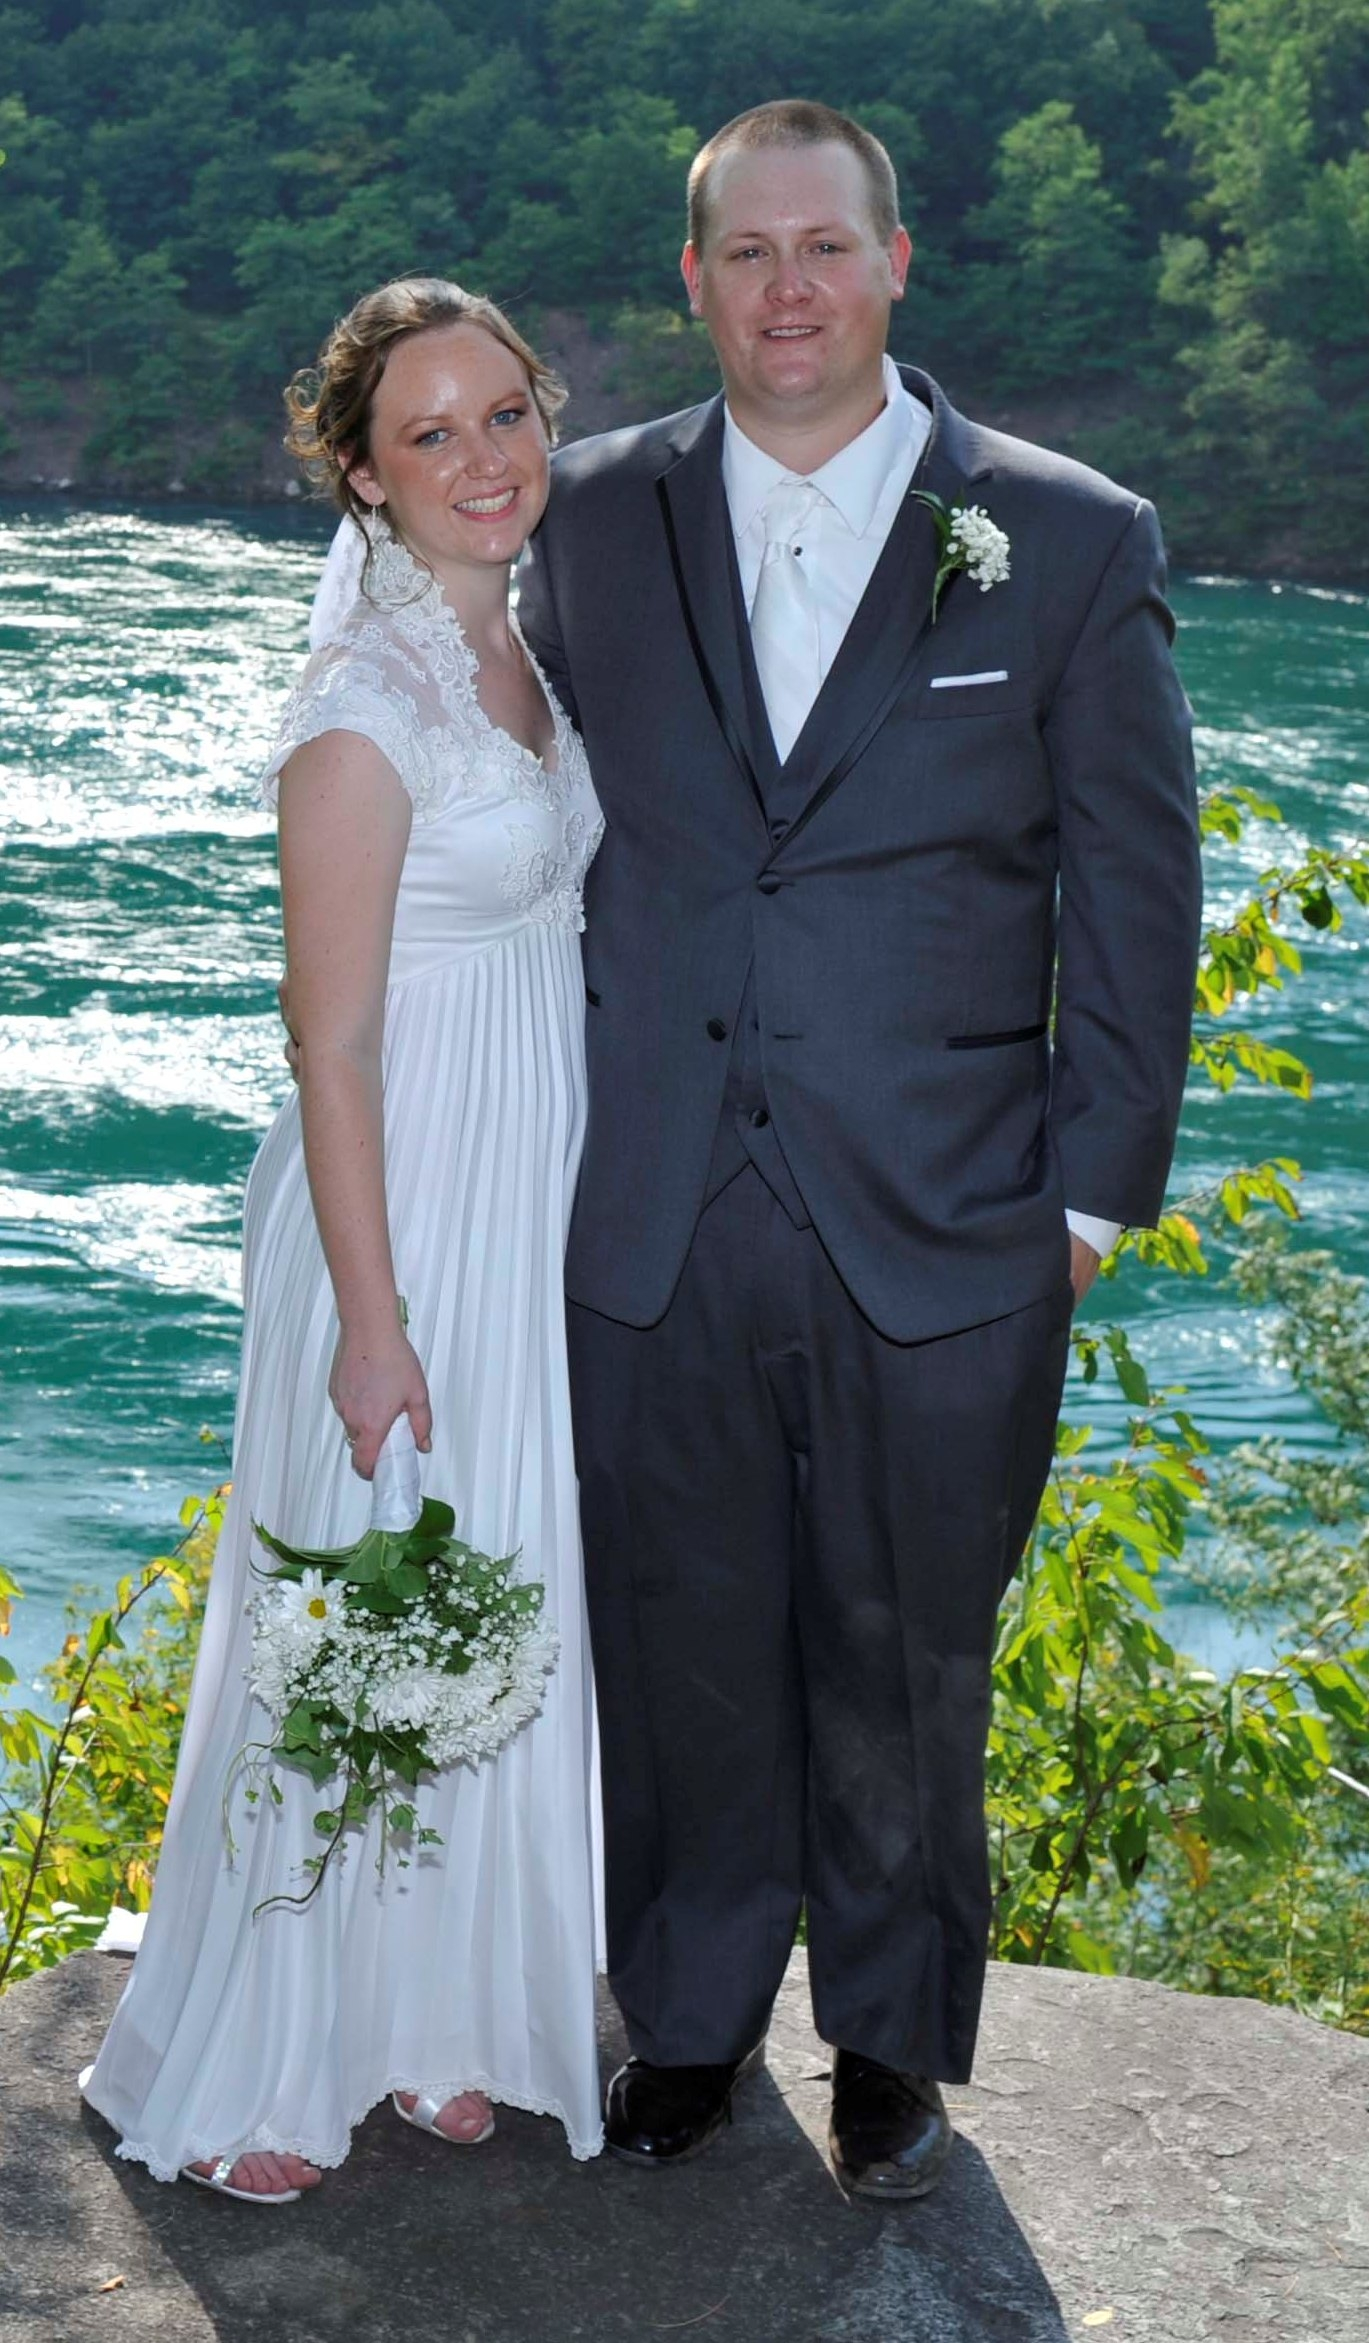 Jamie Norton and Brandon Daly are wed in Lewiston